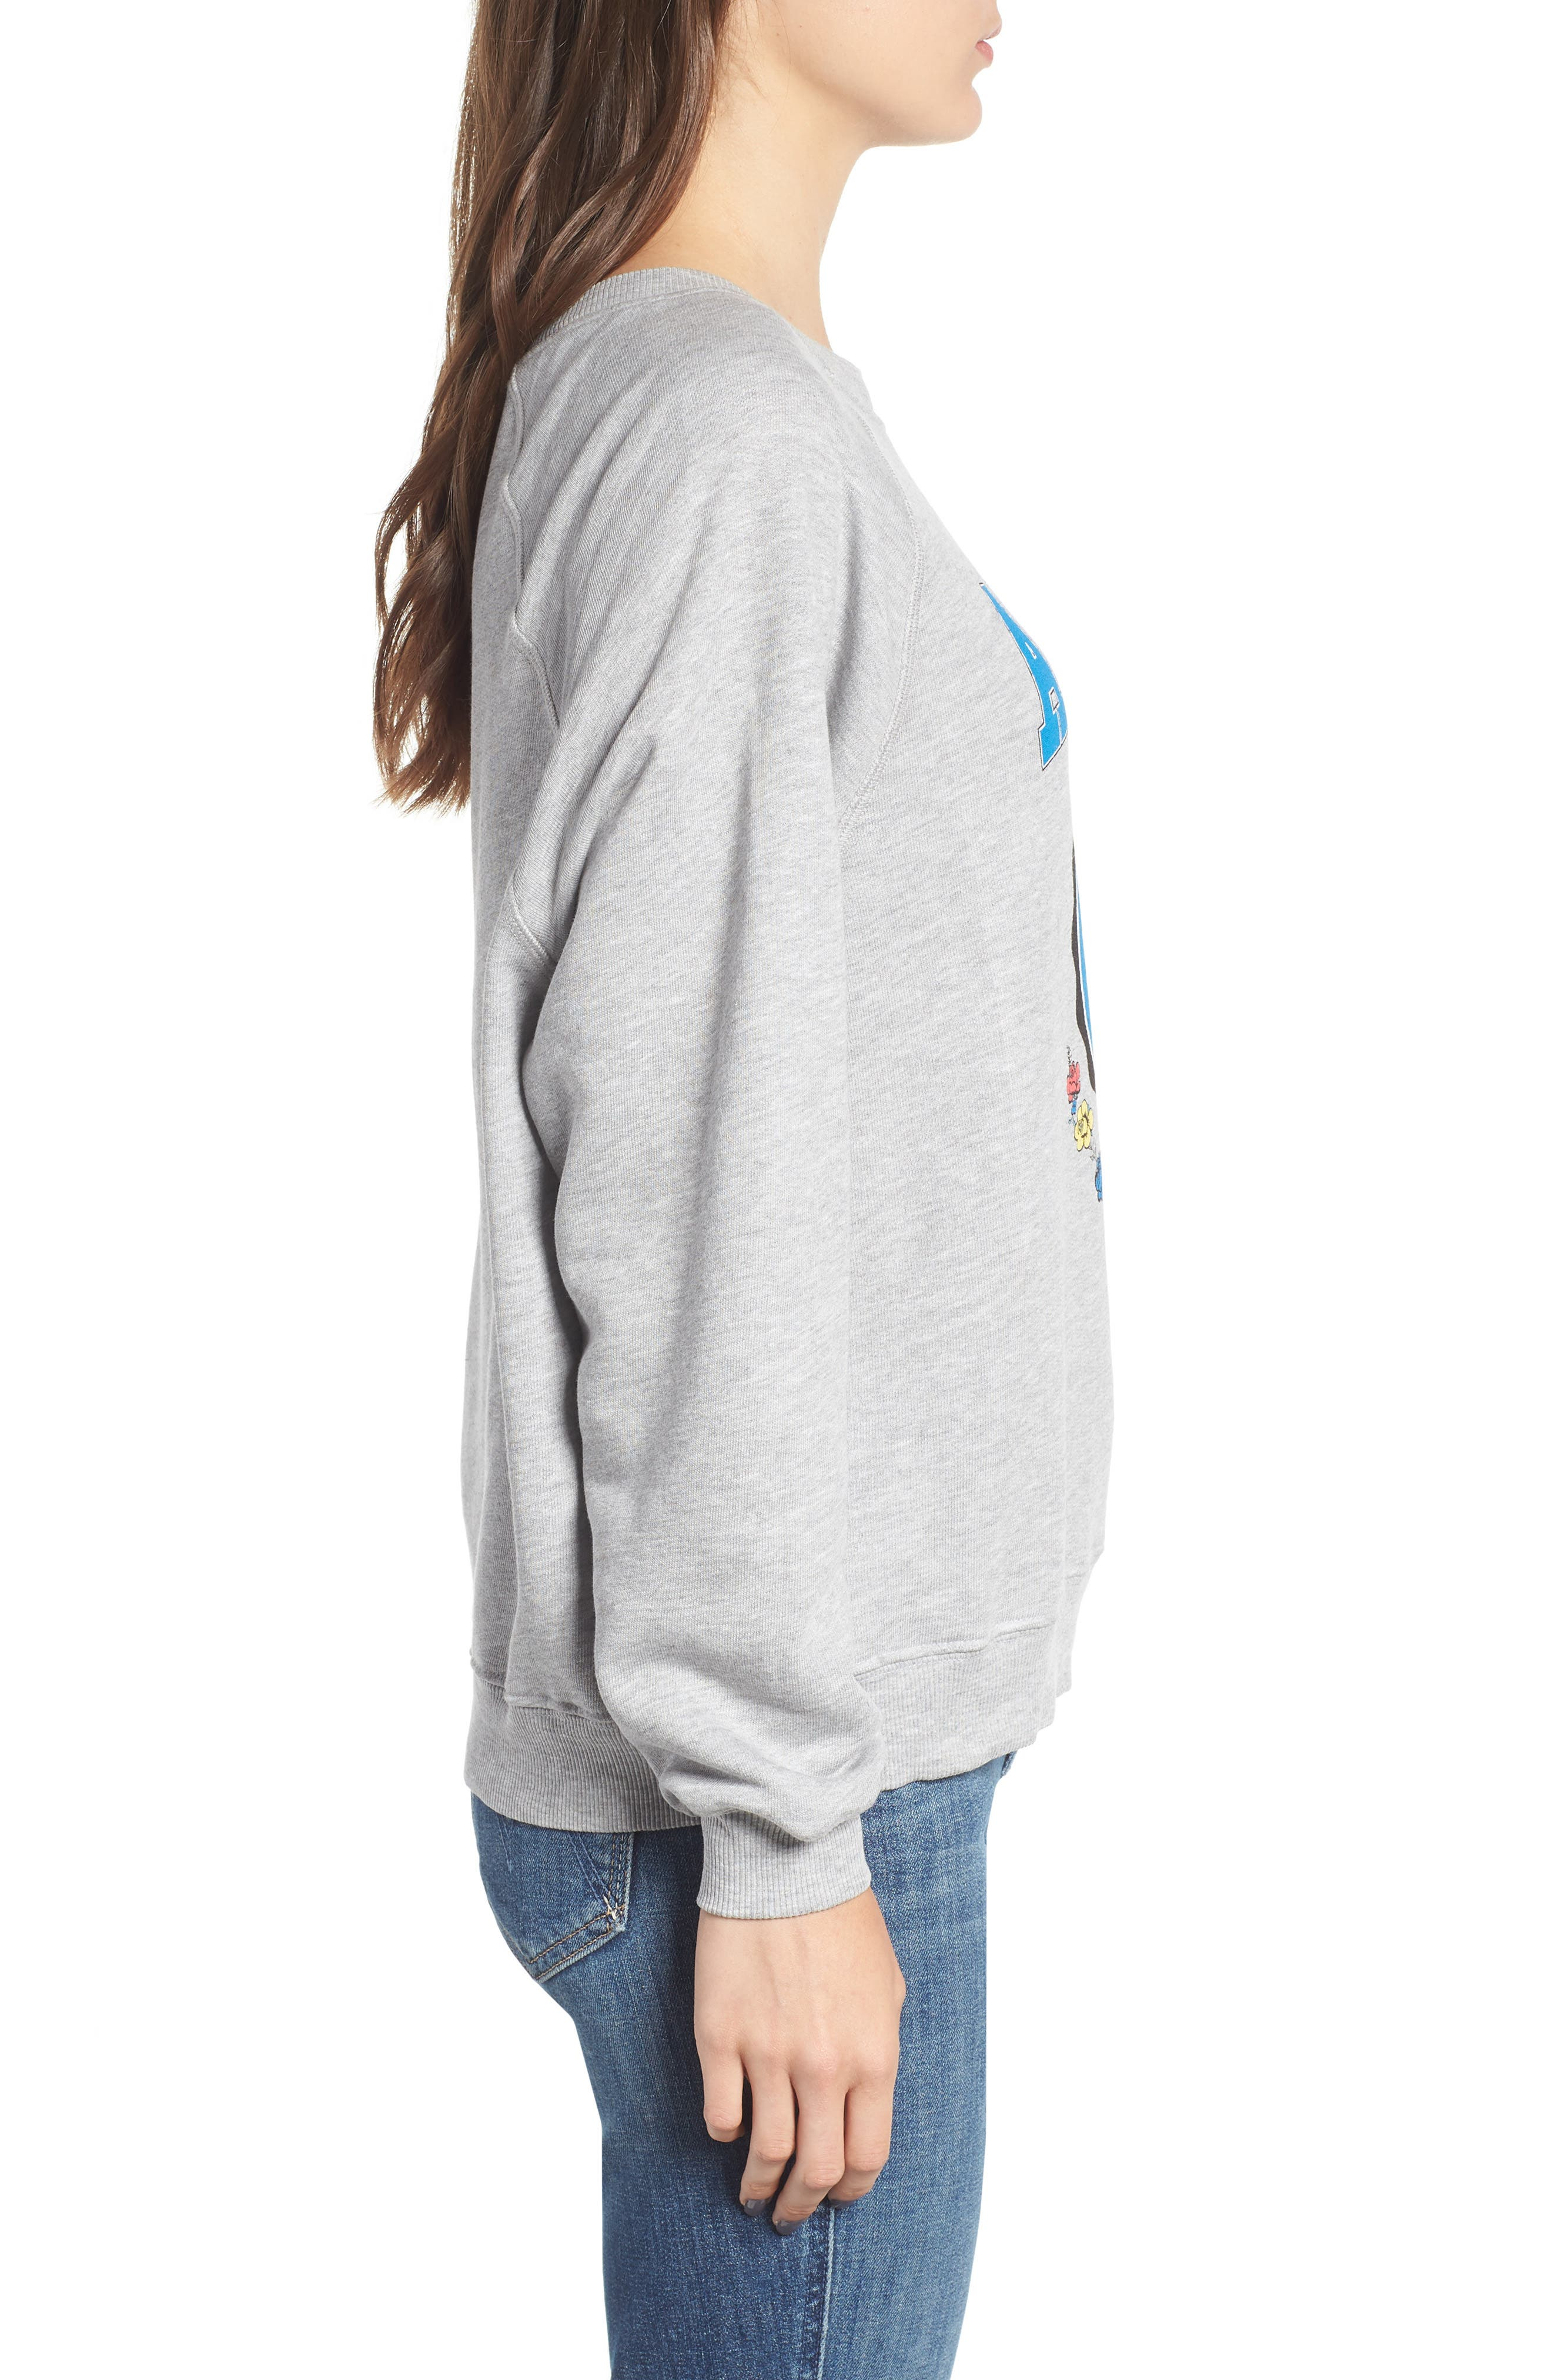 Austin Crest Sommers Sweatshirt,                             Alternate thumbnail 3, color,                             HEATHER